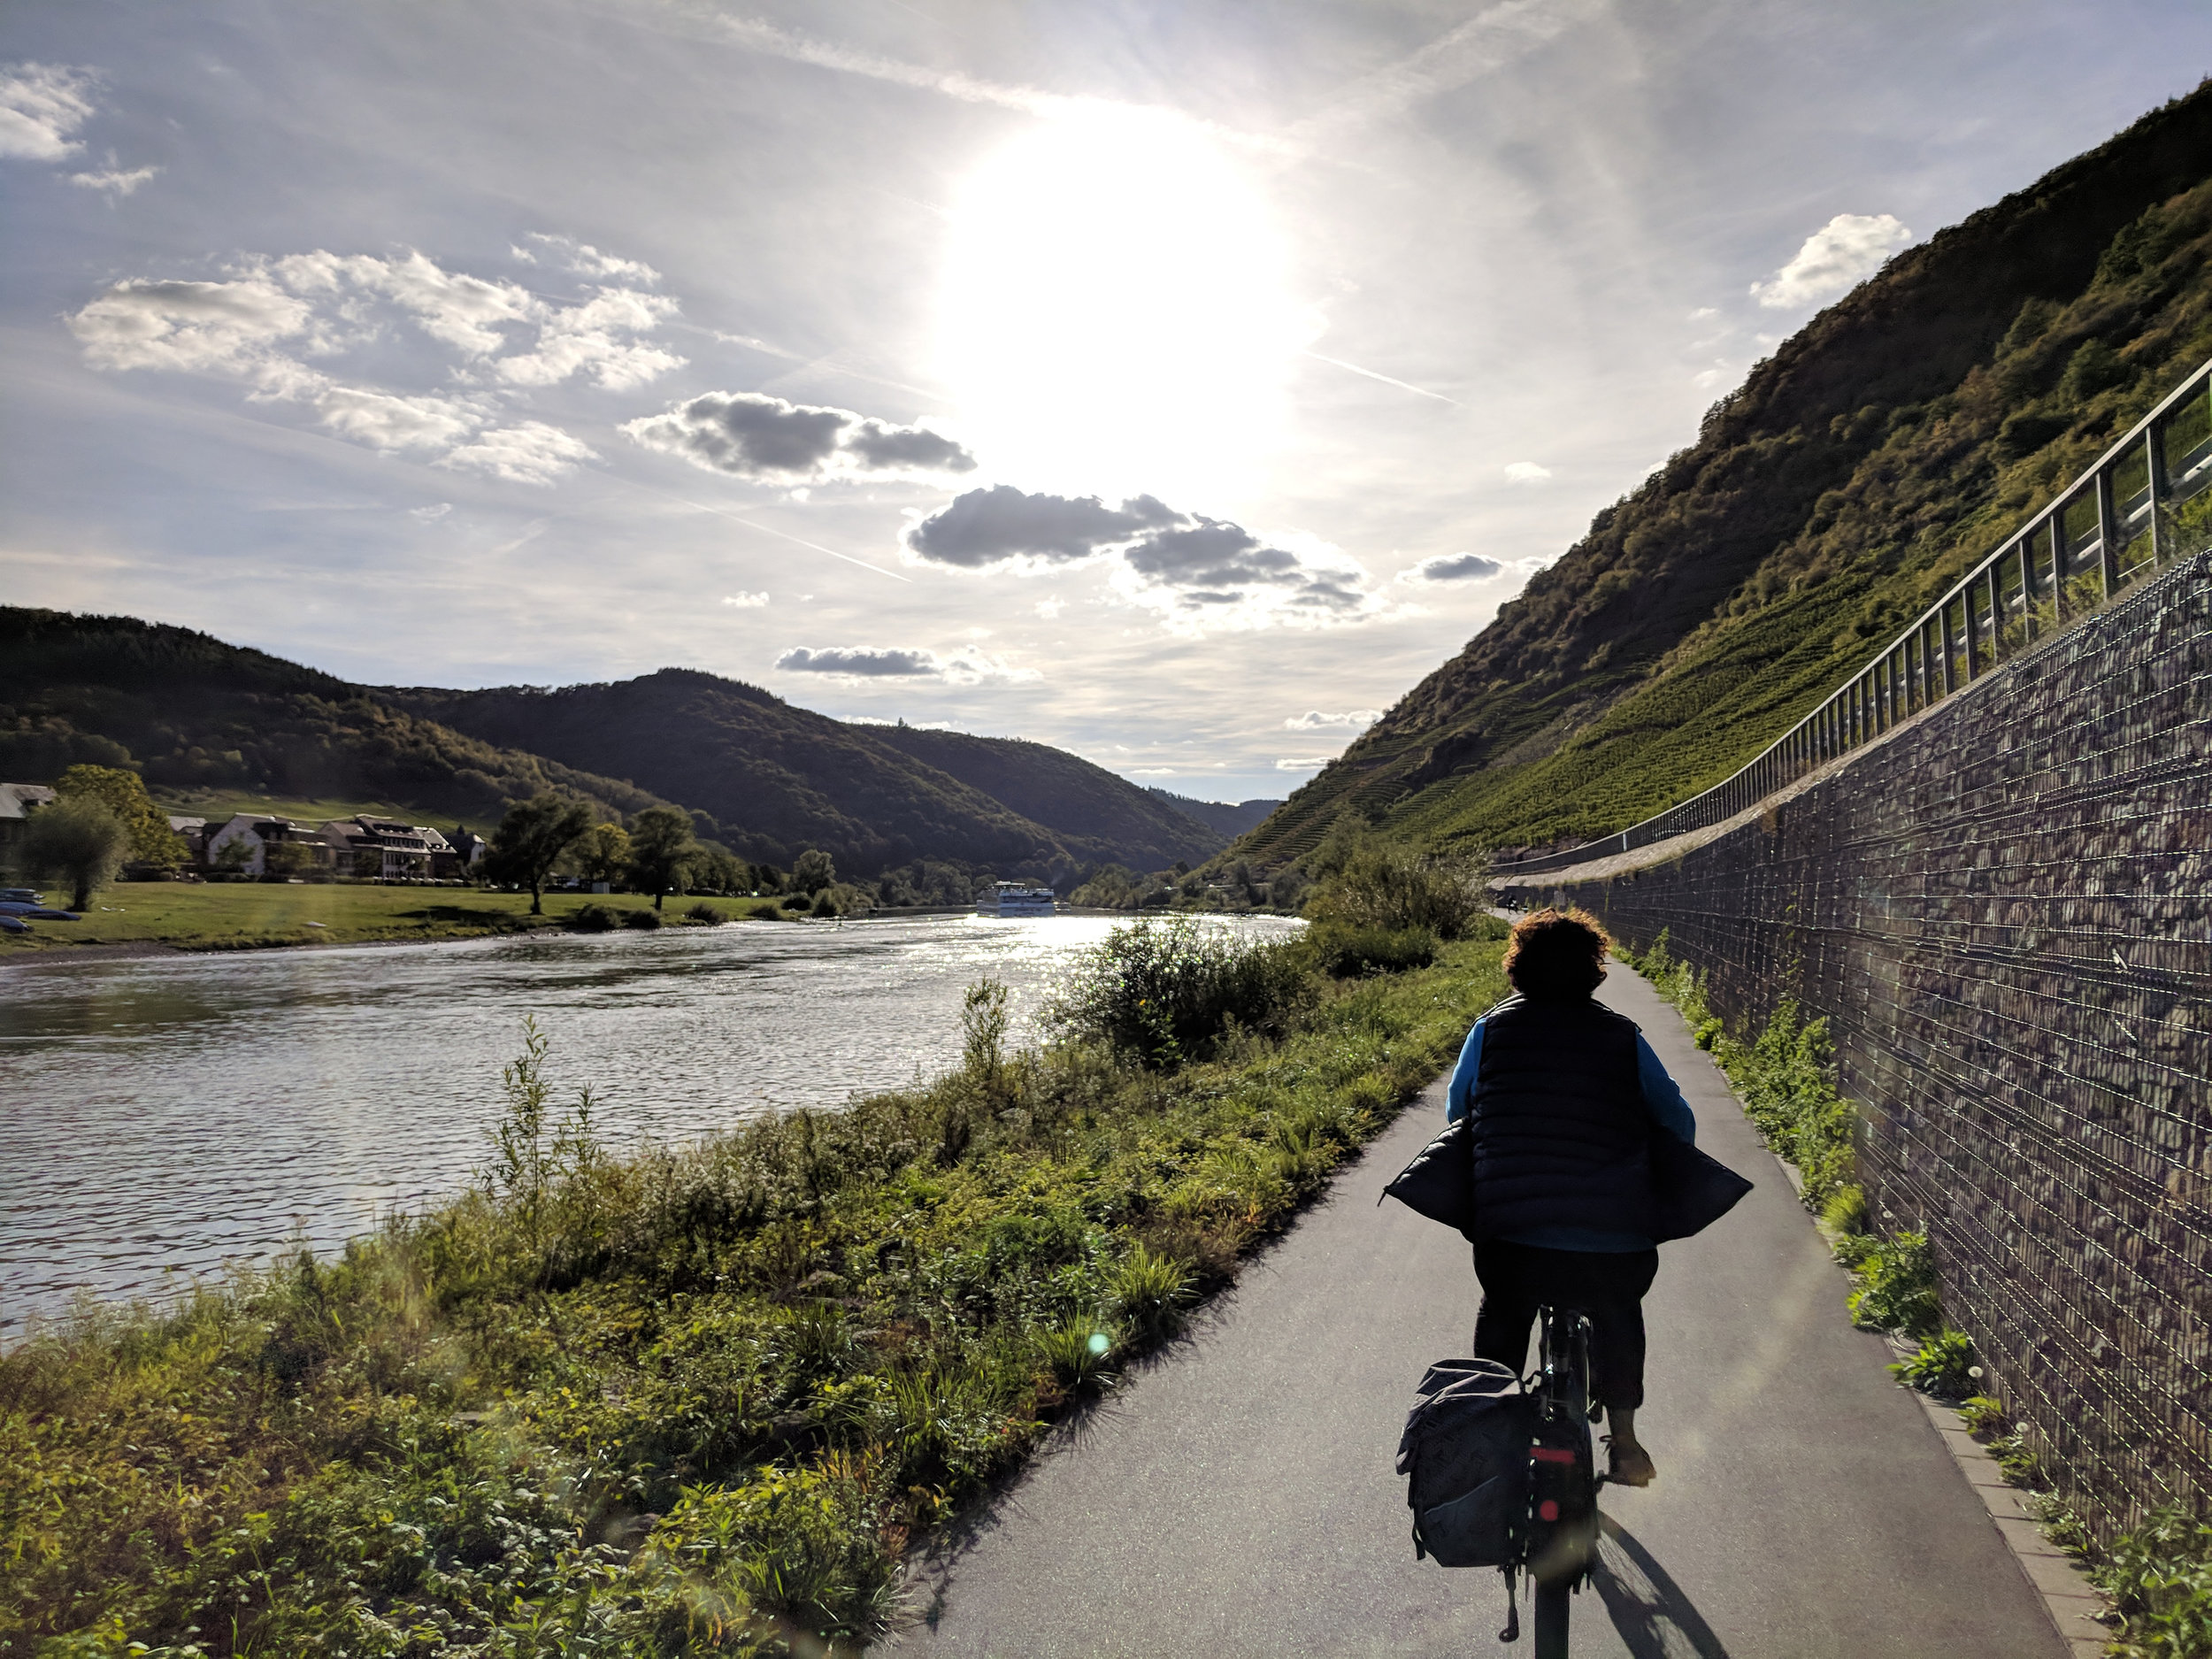 There are cycle paths along both sides of the river